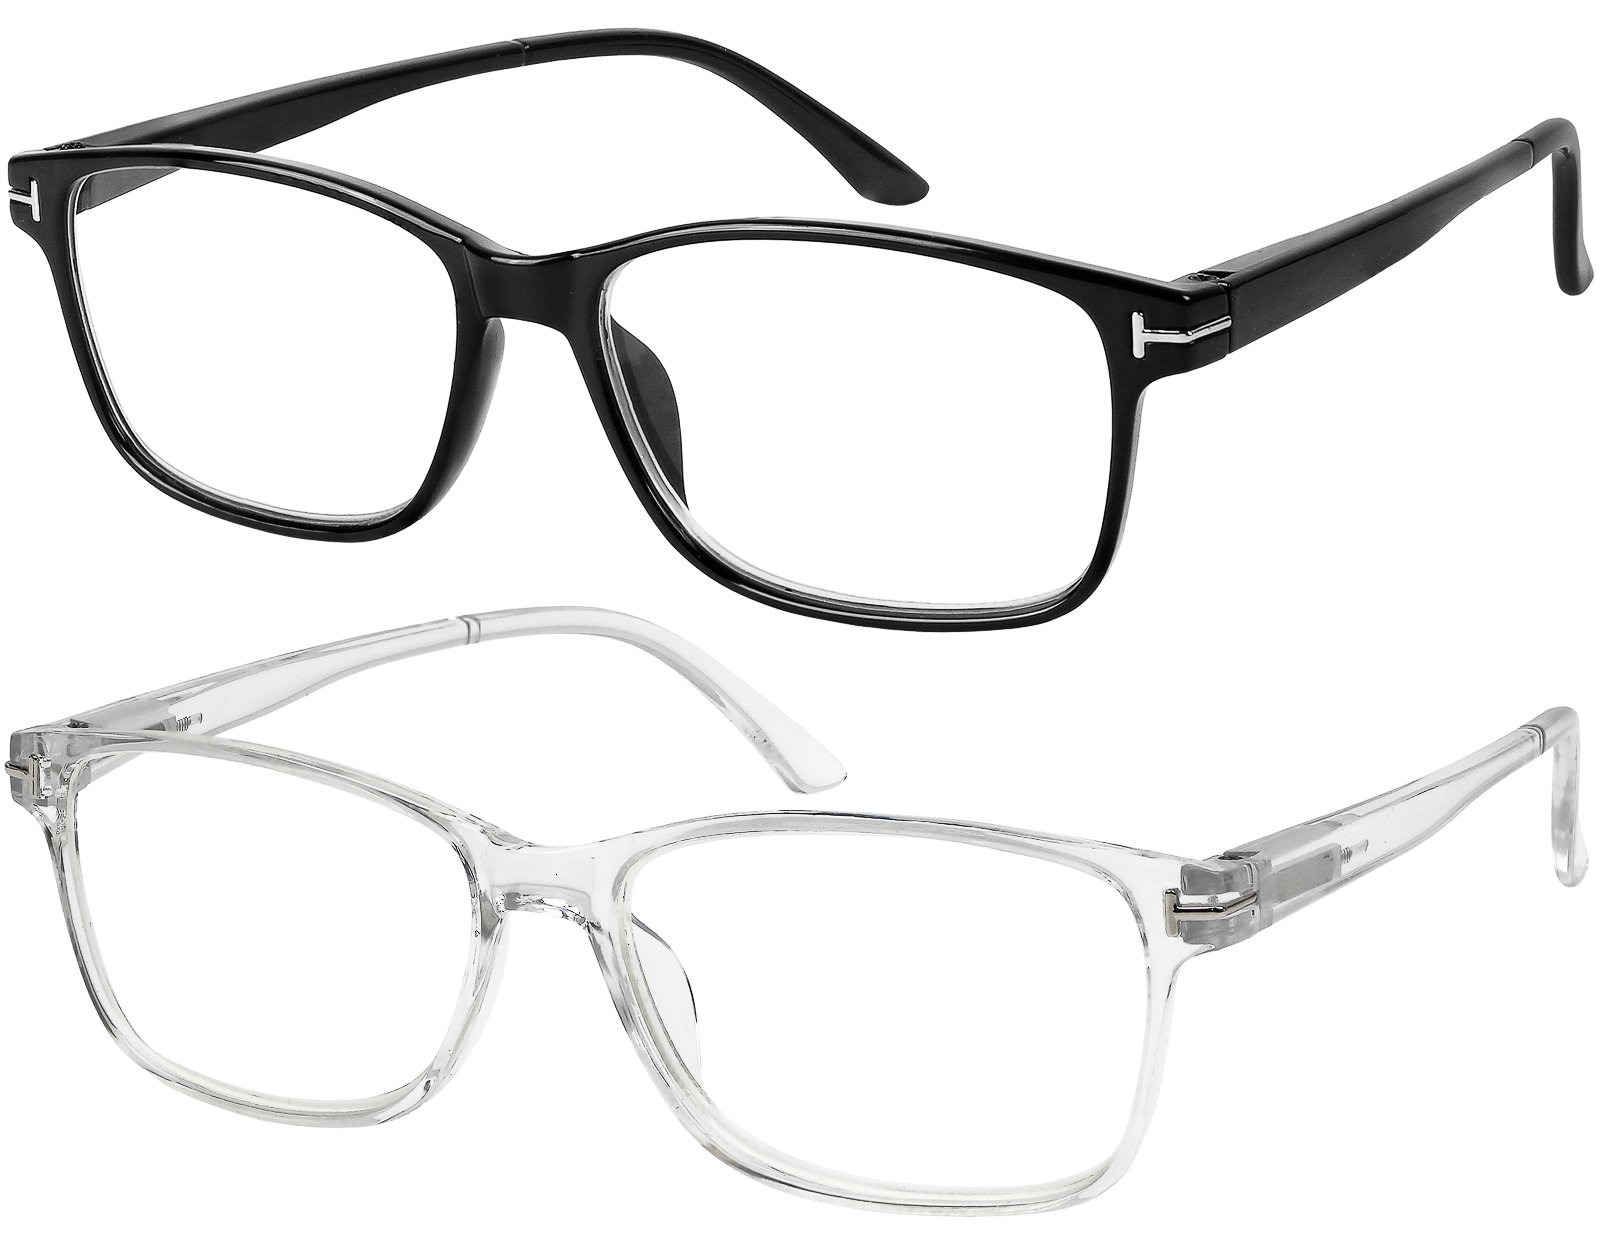 Computer Glasses 2 Pairs Anti Glare Anti Reflection Classic Reading Glasses Quality Comfort Glasses for Men and Women +2.5 by Success Eyewear